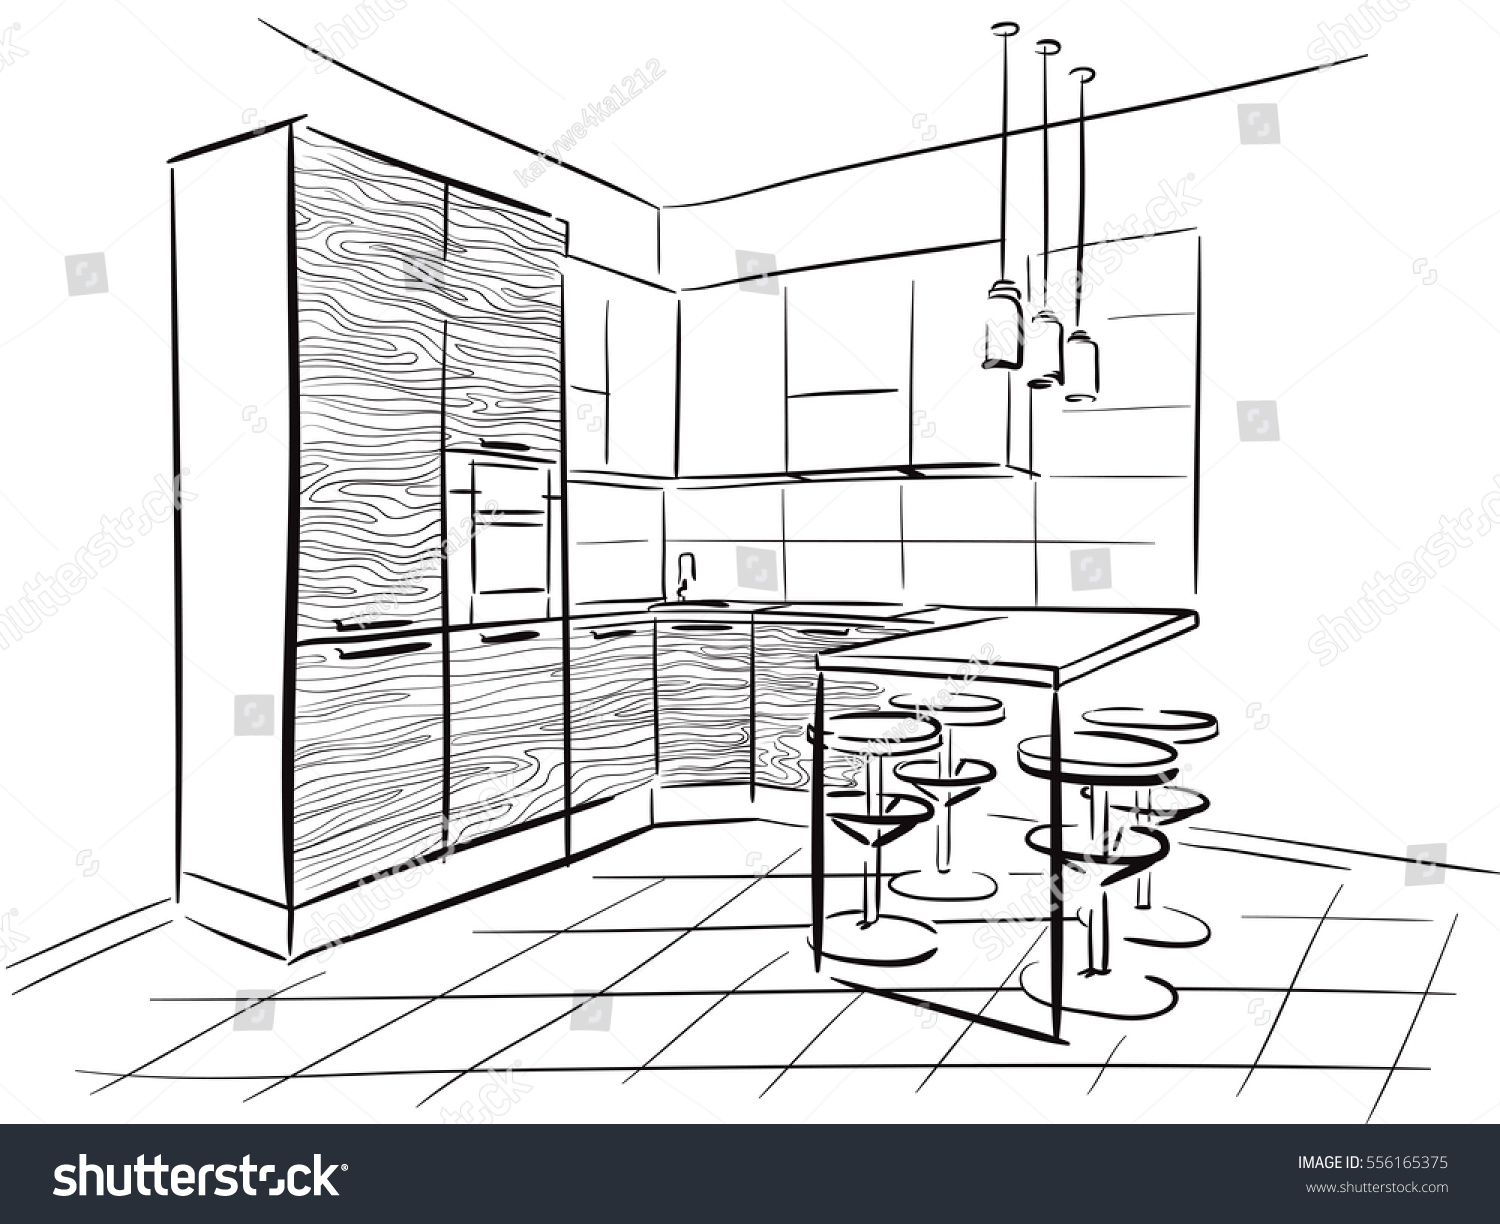 Interior Design Sketch Kitchen Dinner Table Stock Vector Royalty